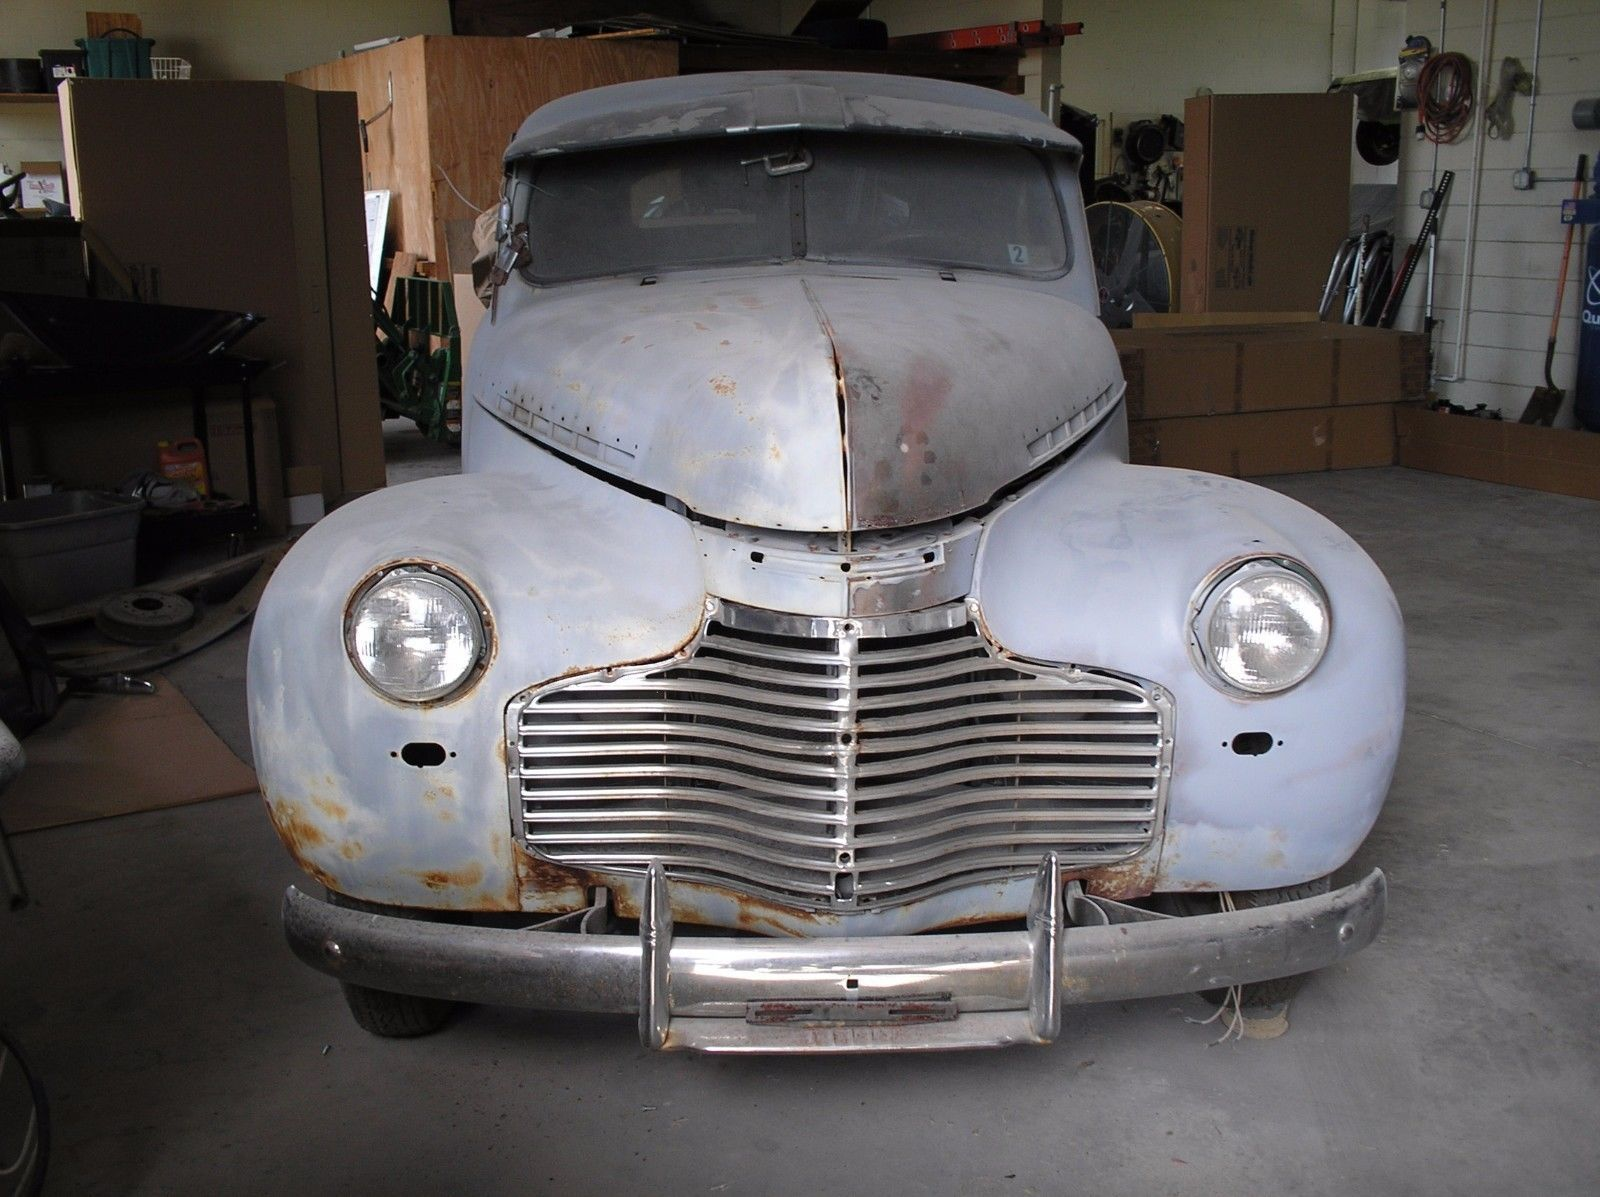 Ebay 1941 chevrolet business man coupe stock 1941 chevrolet business man s coupe project car